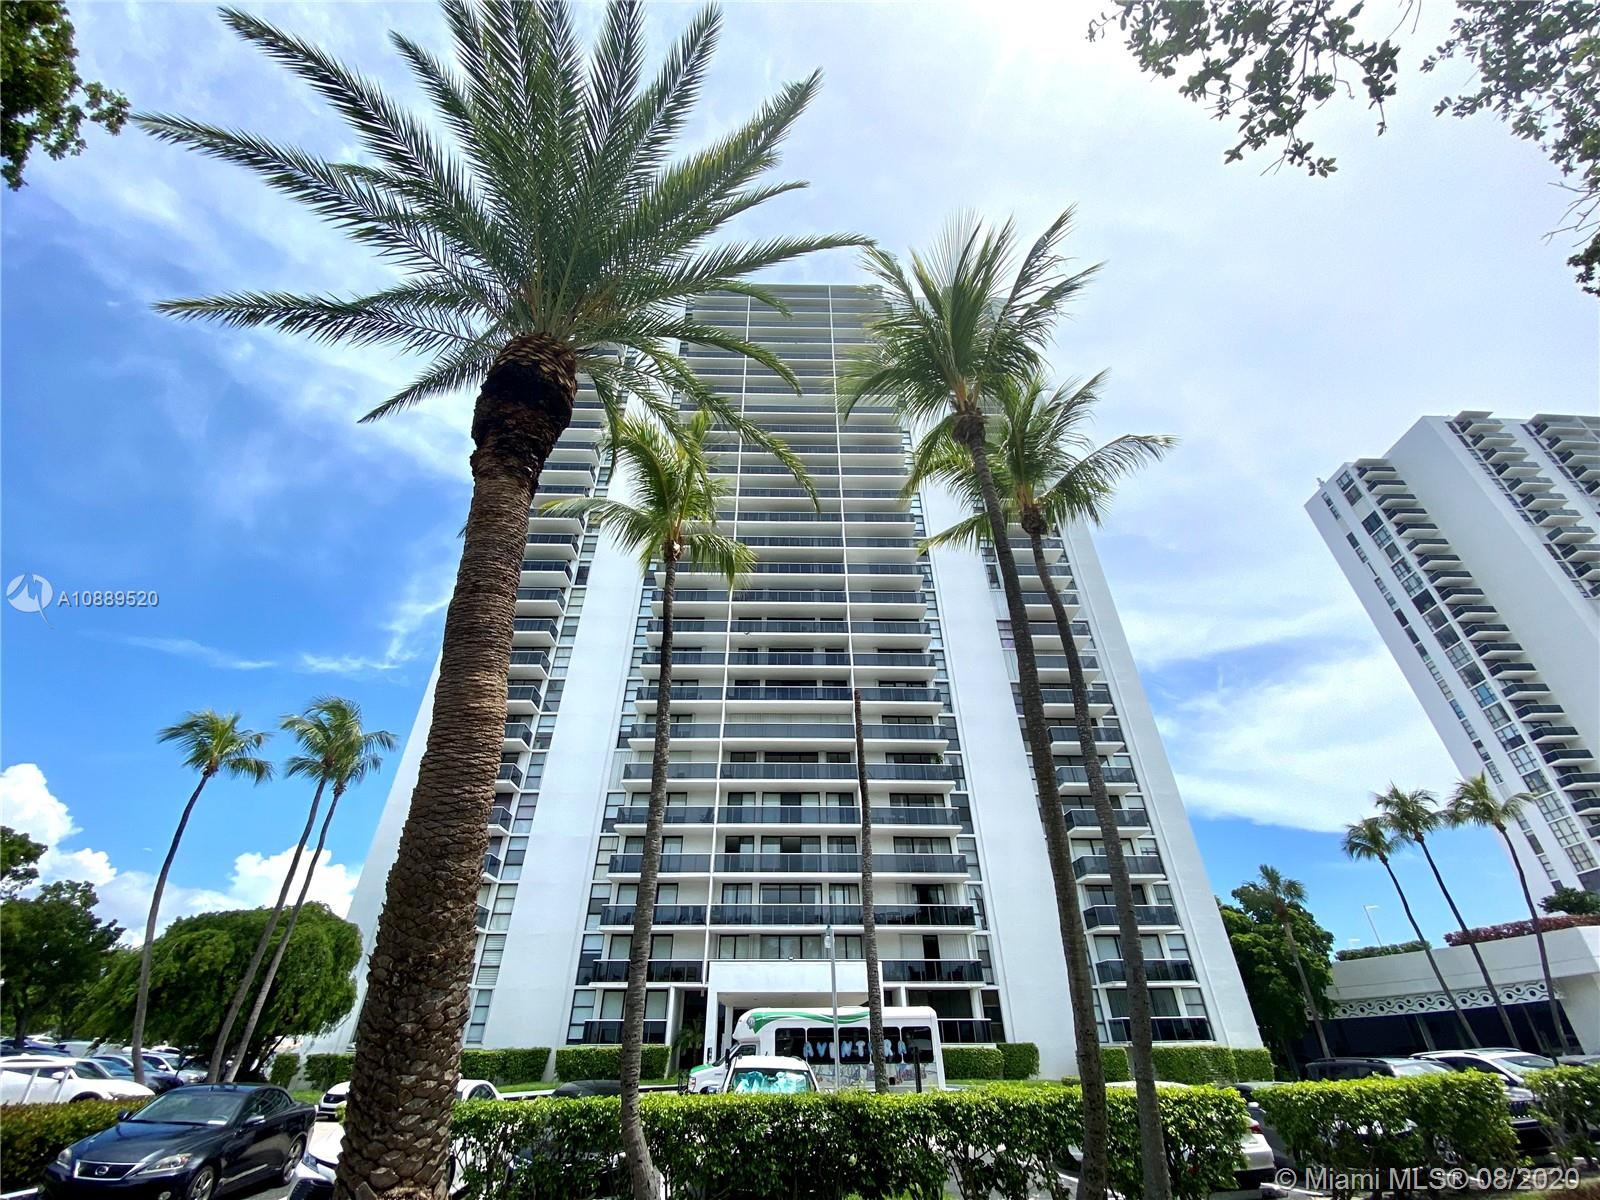 3625 N Country Club Dr #210 For Sale A10889520, FL